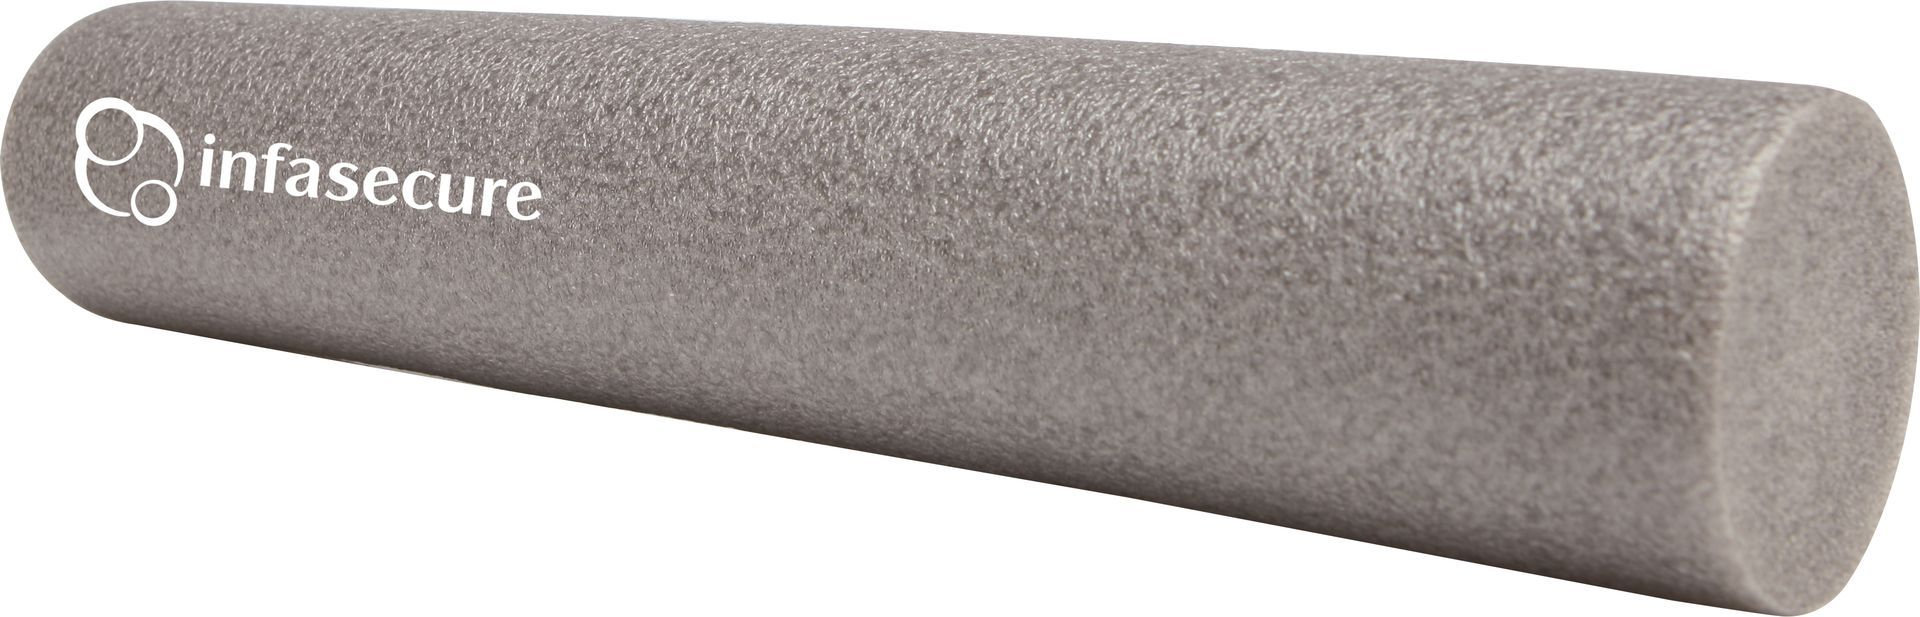 Recline Foam Bar